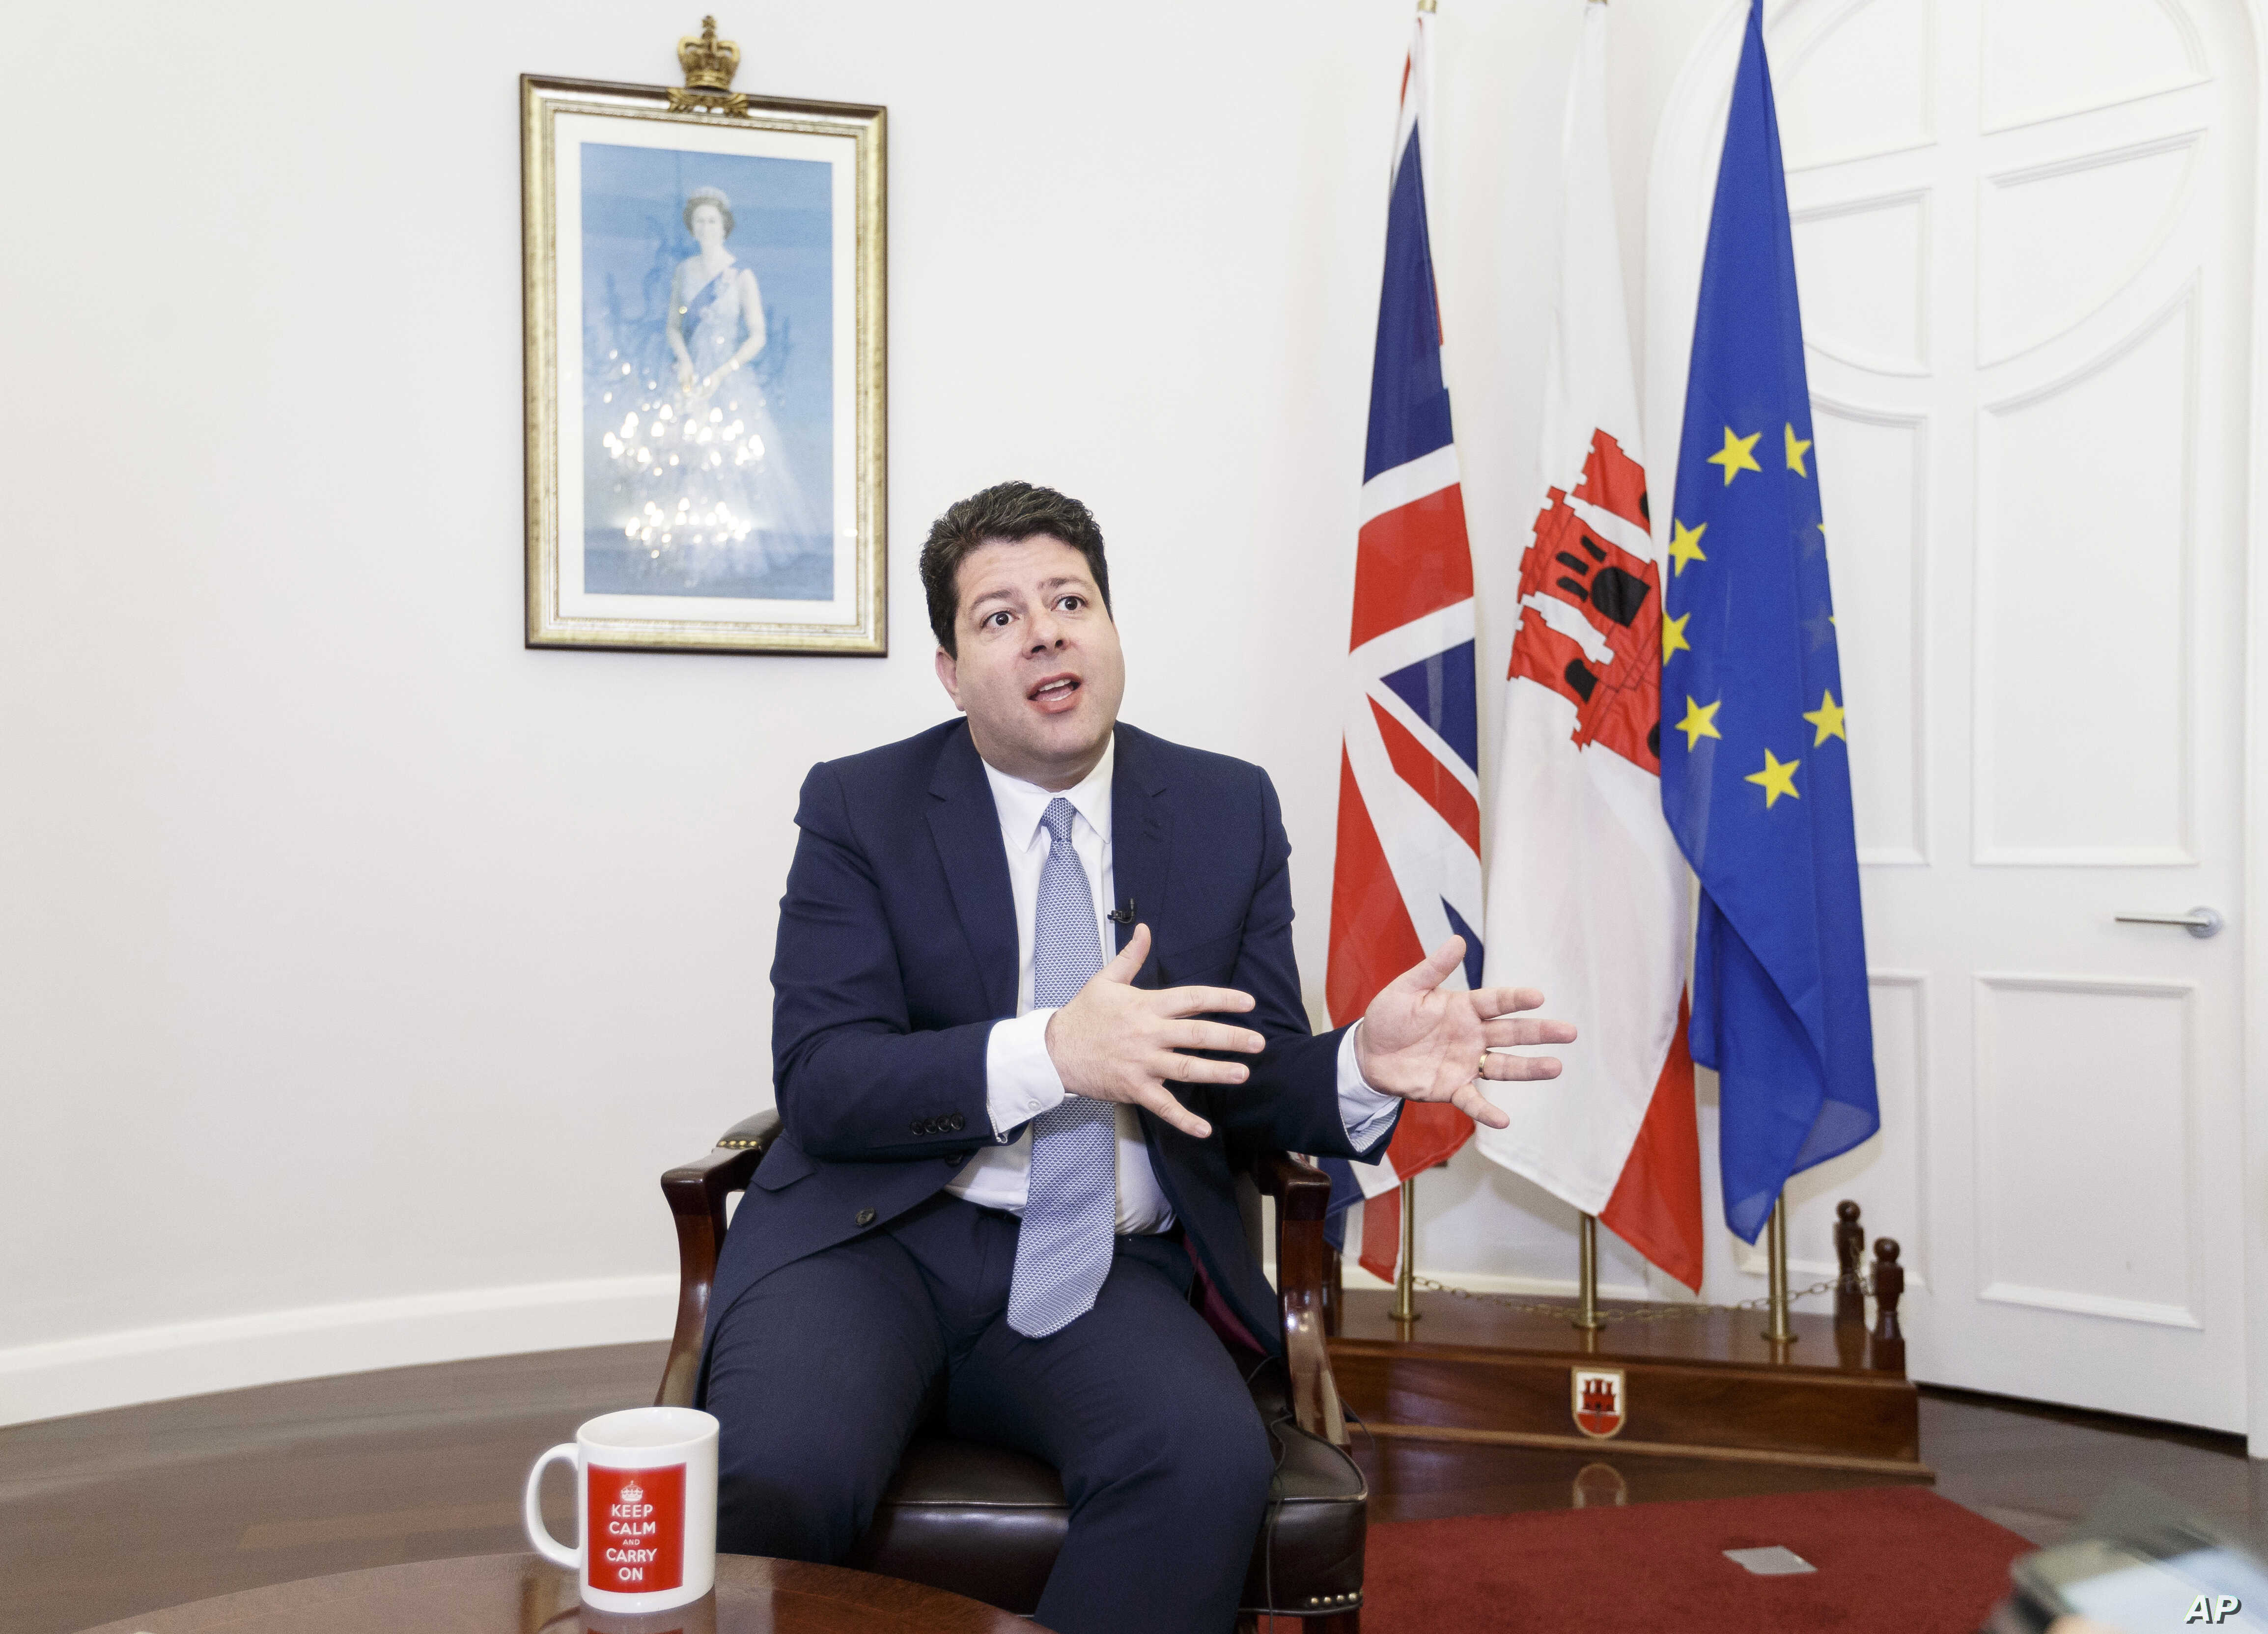 Chief Minister of Gibraltar, Fabian Picardo , speaks during an interview with The Associated Press in No. 6 Convent Place, the seat of Gibraltar's government, in the British territory of Gibraltar, Feb. 28, 2017.